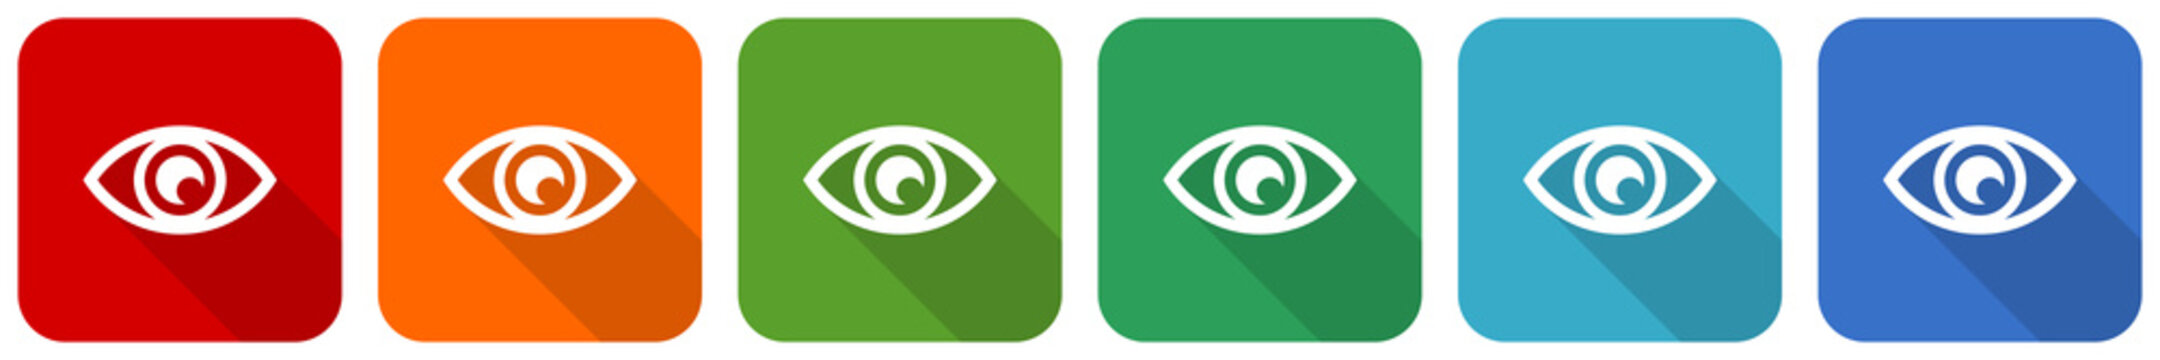 Eye, see, vision, sight and view icon set, flat design vector illustration in 6 colors options for webdesign and mobile applications